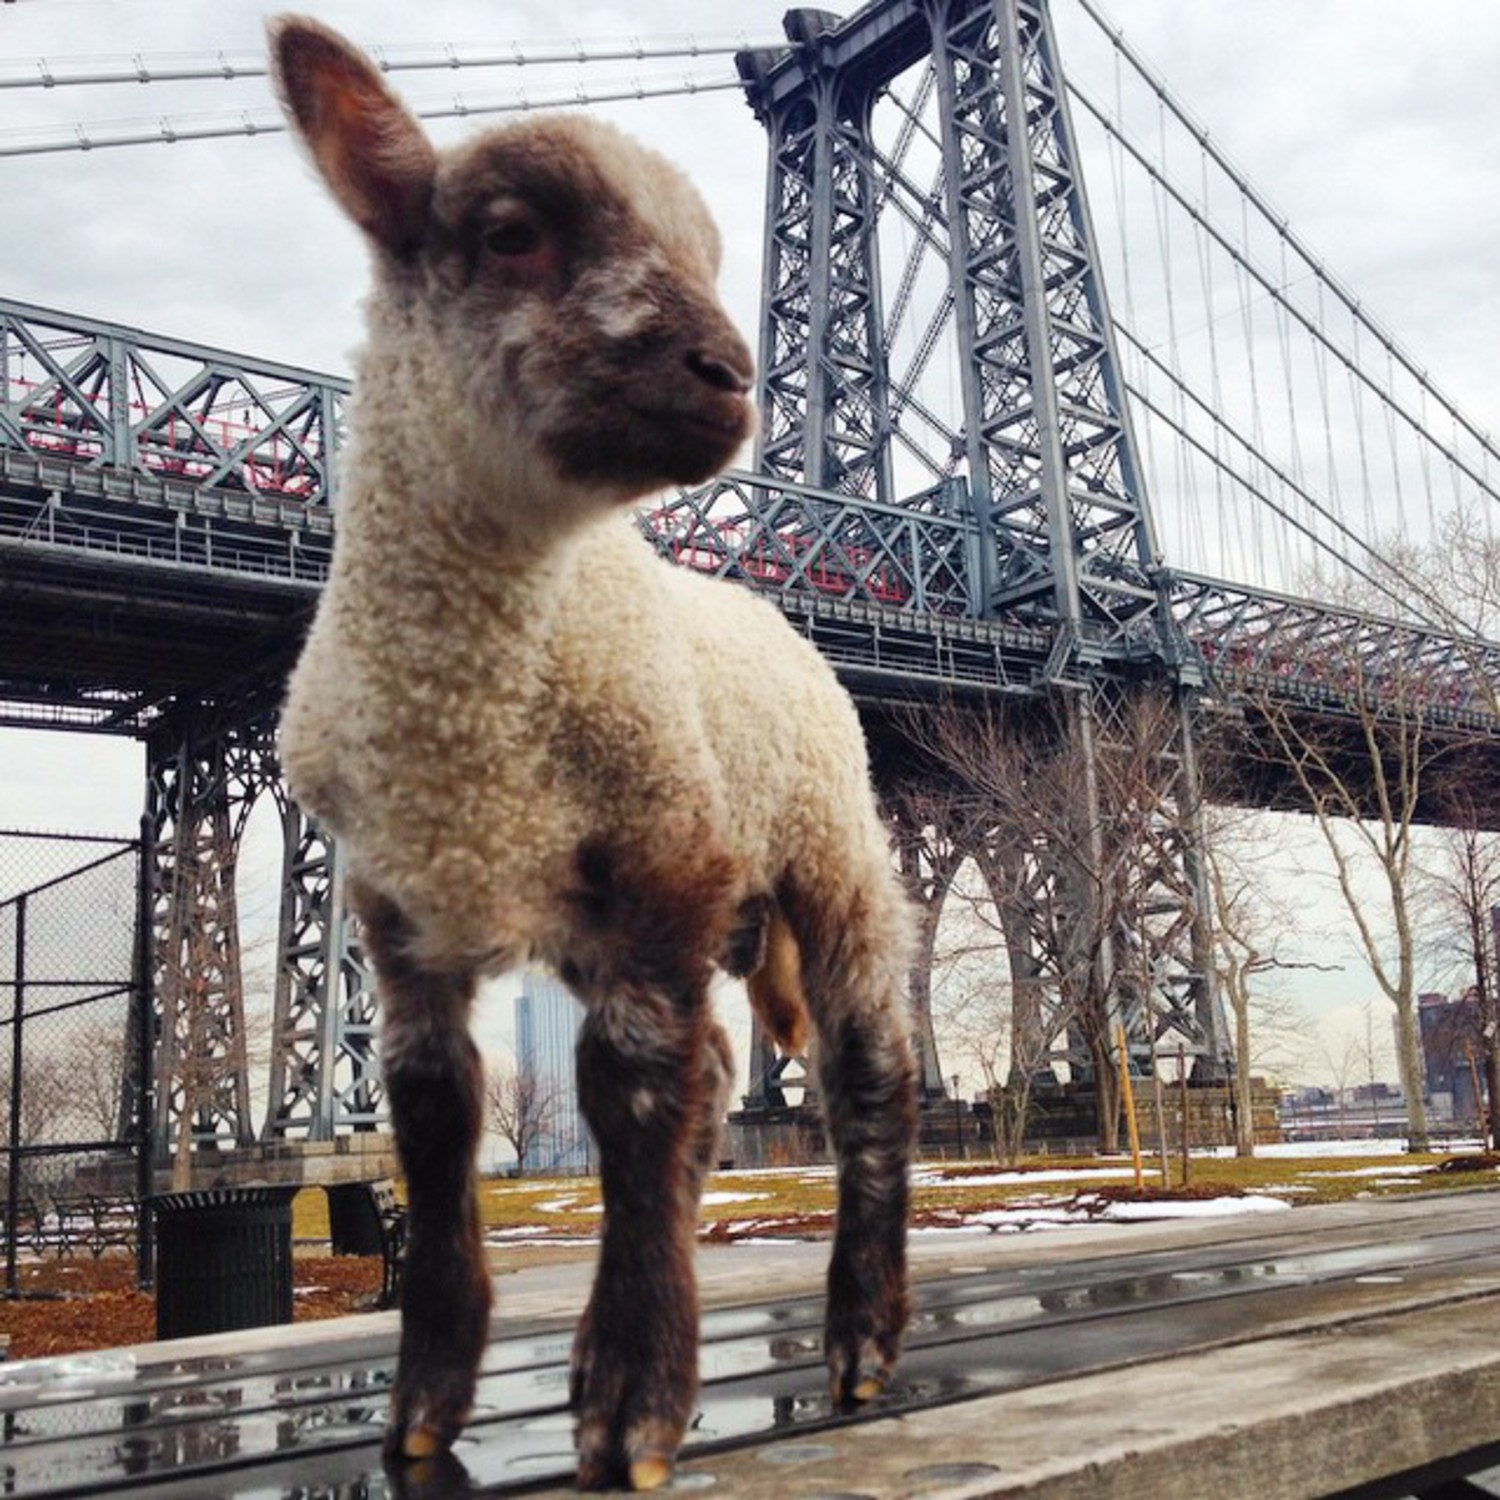 Smokey : Lamb in the City #smokeyDalamb #farmtotable #farmtocity #baa #bae #bey #beyonce #bowdownbitches #illuminati